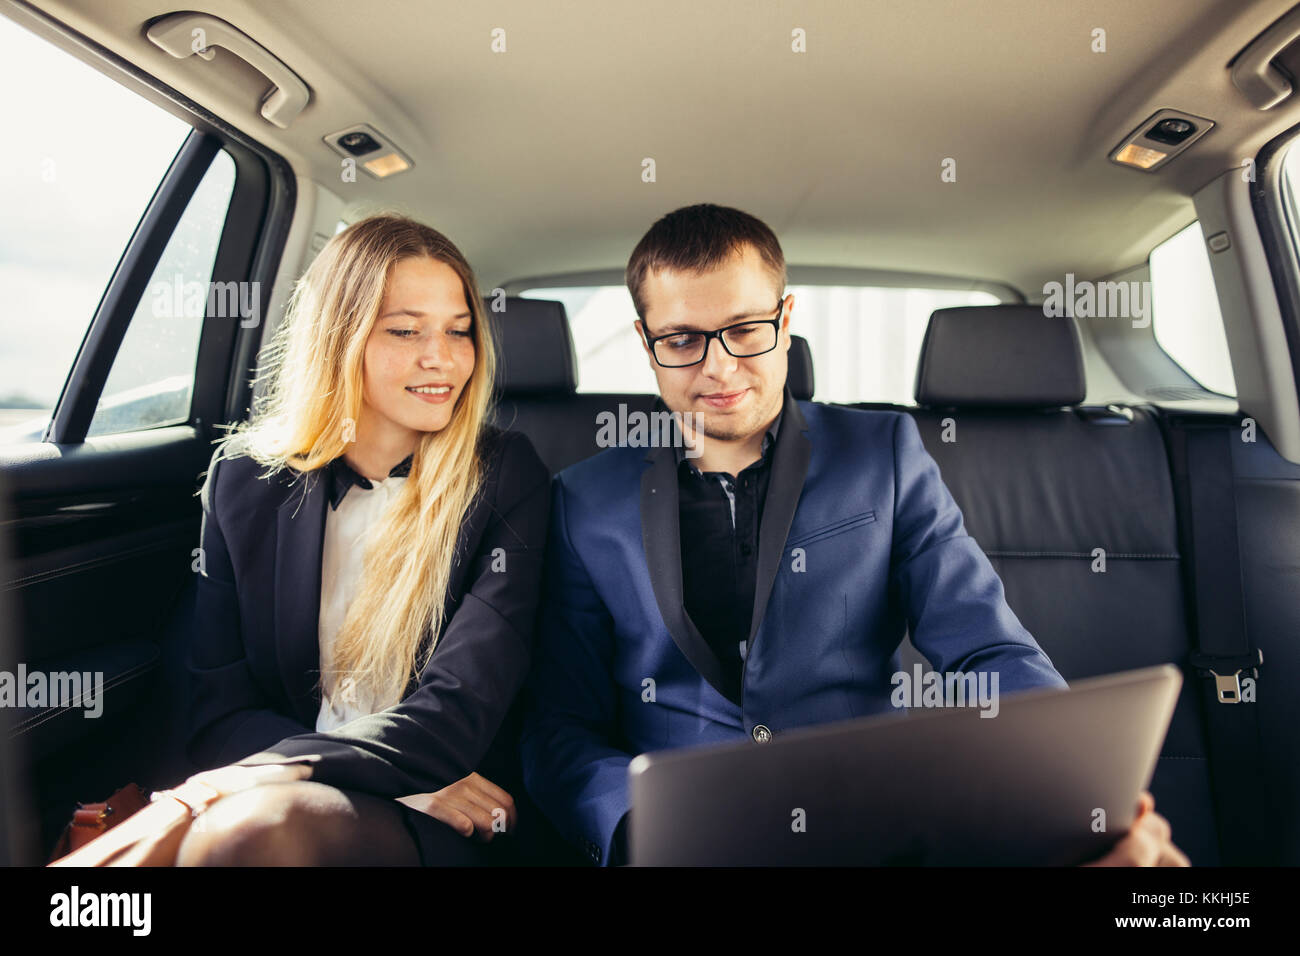 Business People Meeting Working Car Inside Stock Photo